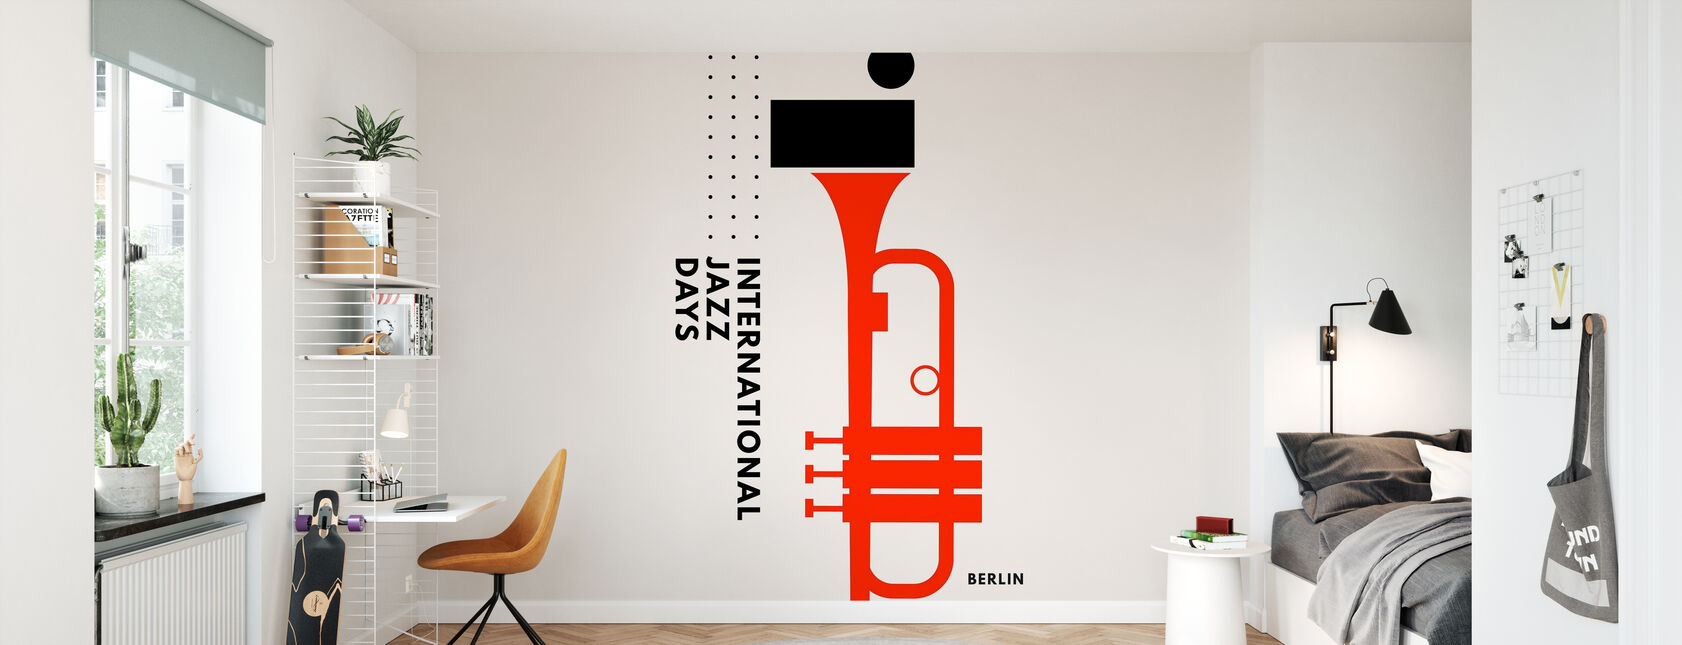 Jazz Days Berlin - Wallpaper - Kids Room